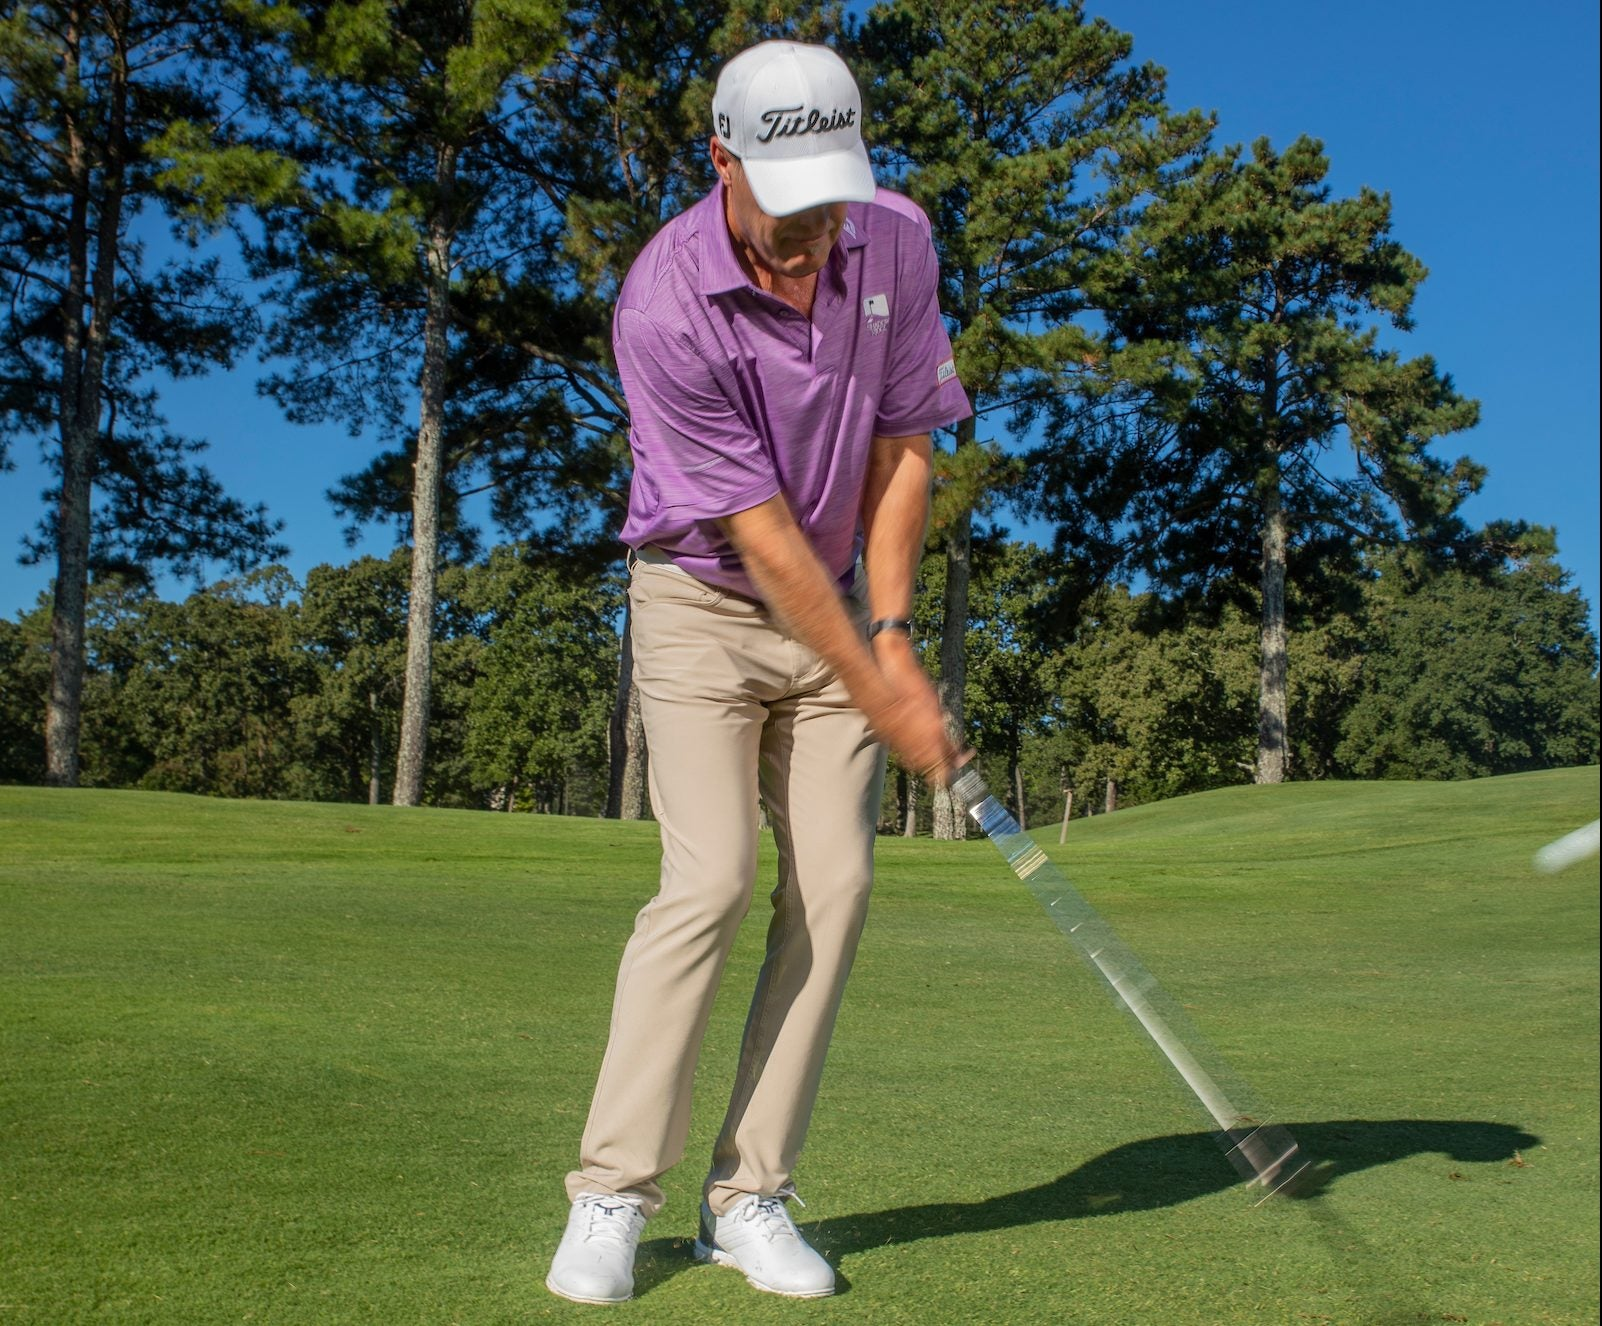 Short game golf tip: James Seickmann demonstrates releasing the clubhead